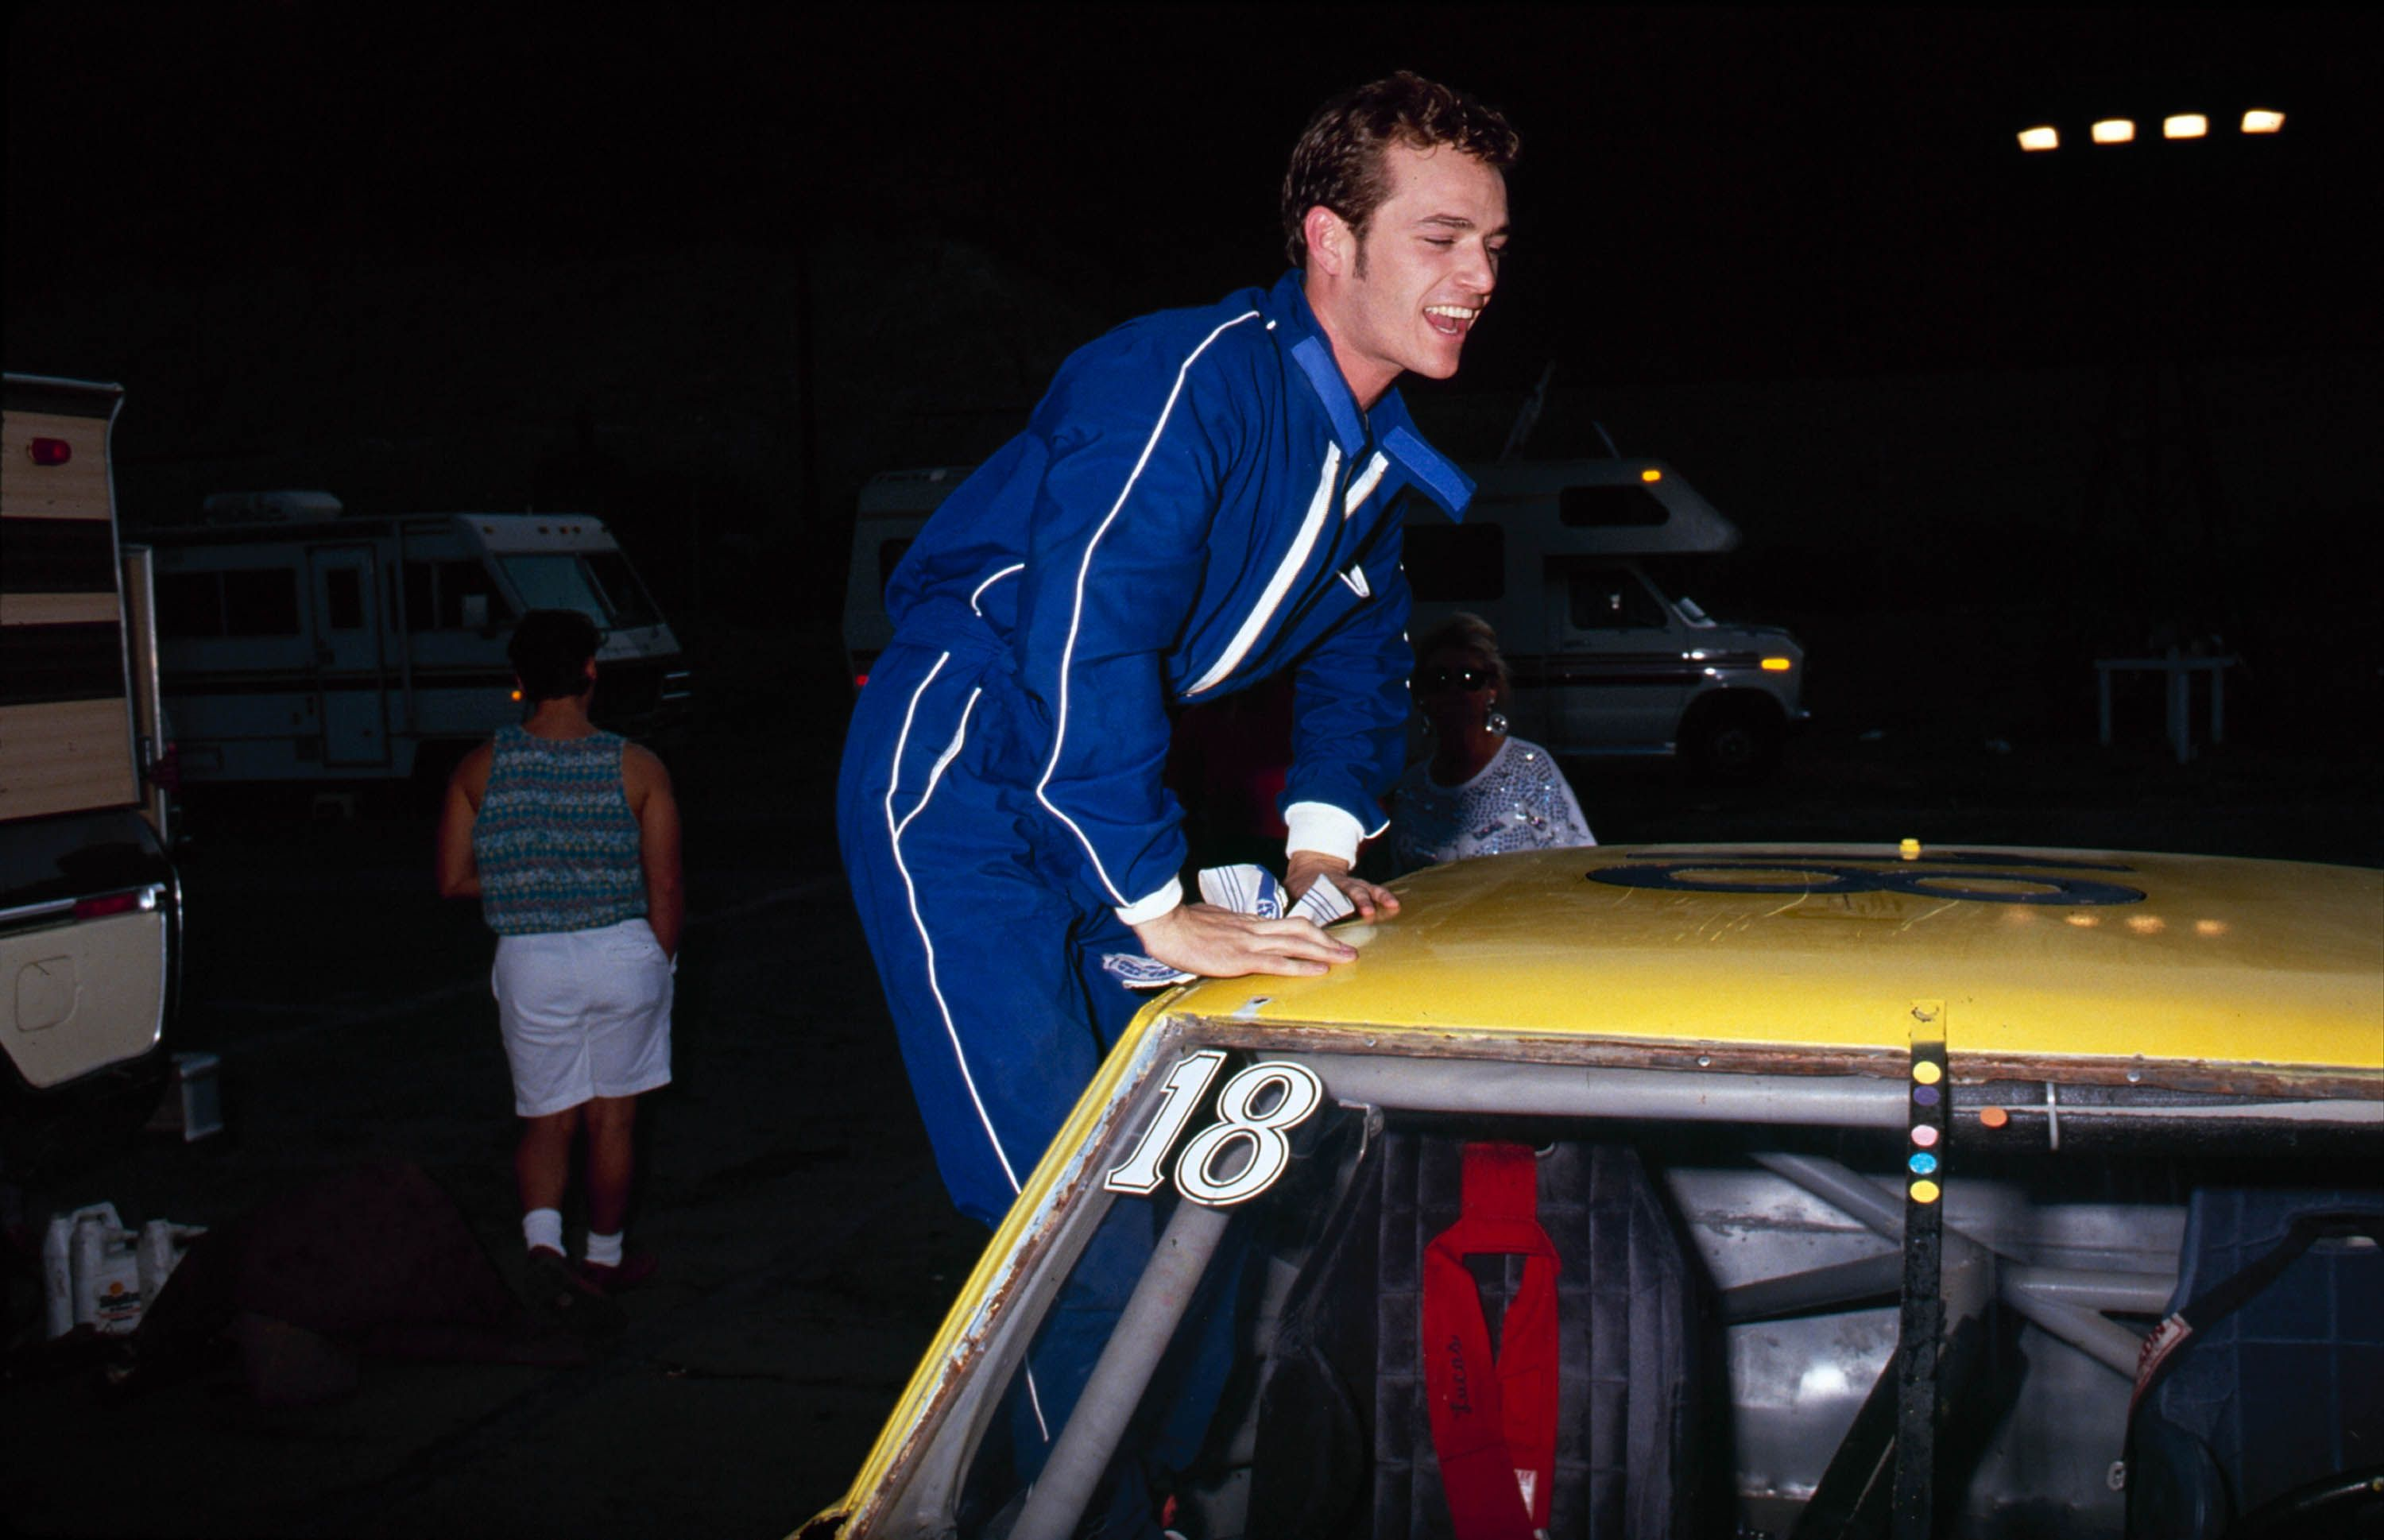 Perry at the 3rd Annual Reid Rondell Association Celebrity Enduro Race at Saugus Speedway in Saugus, CA, 1991.